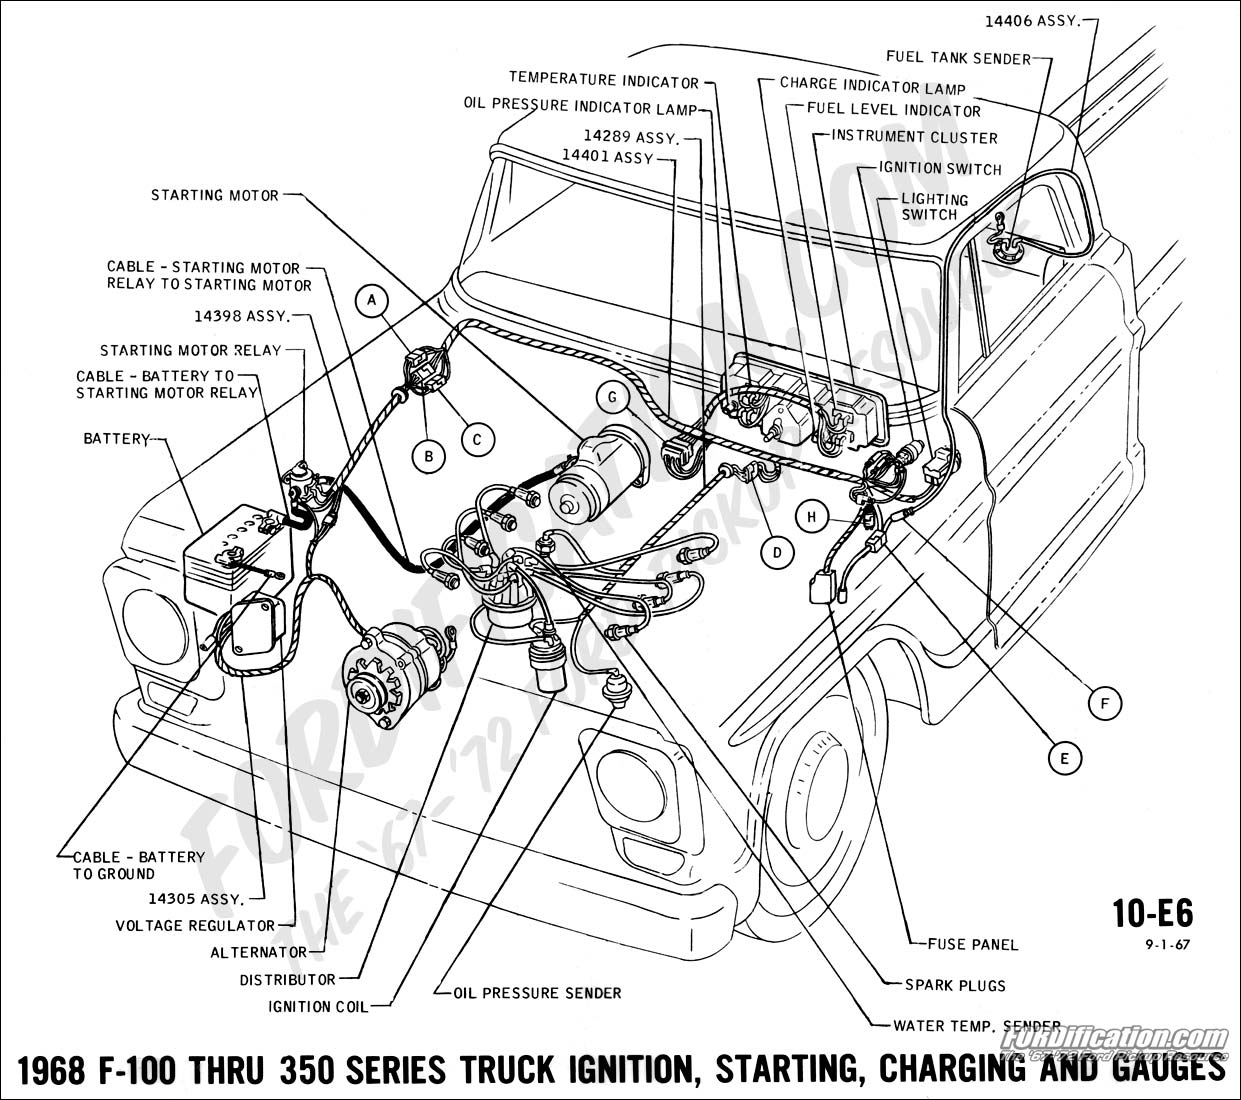 hight resolution of 1968 f 100 thru f 350 ignition starting charging and gauges ford truck technical drawings and schematics